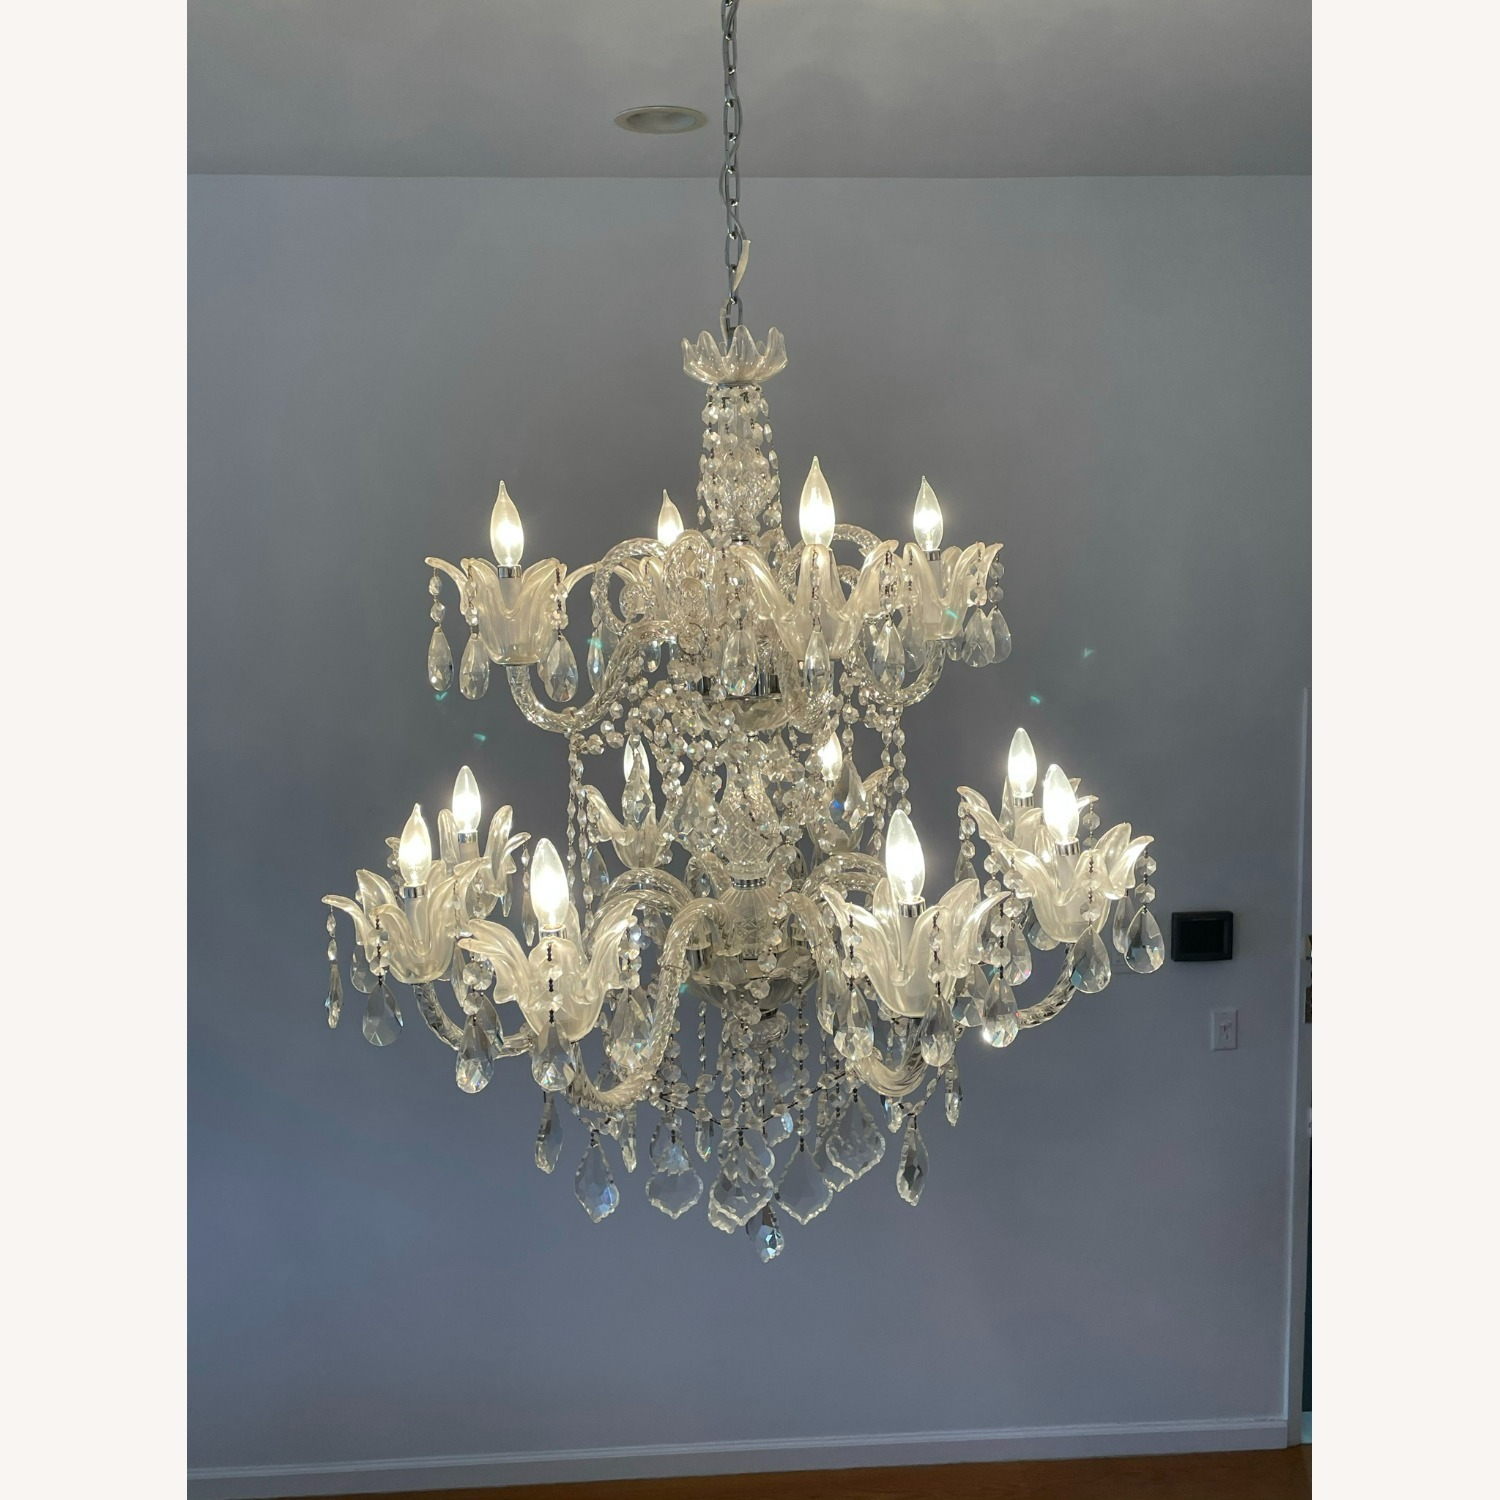 X-Large 12 Bulb Crystal 2-Tier Chandelier - image-11